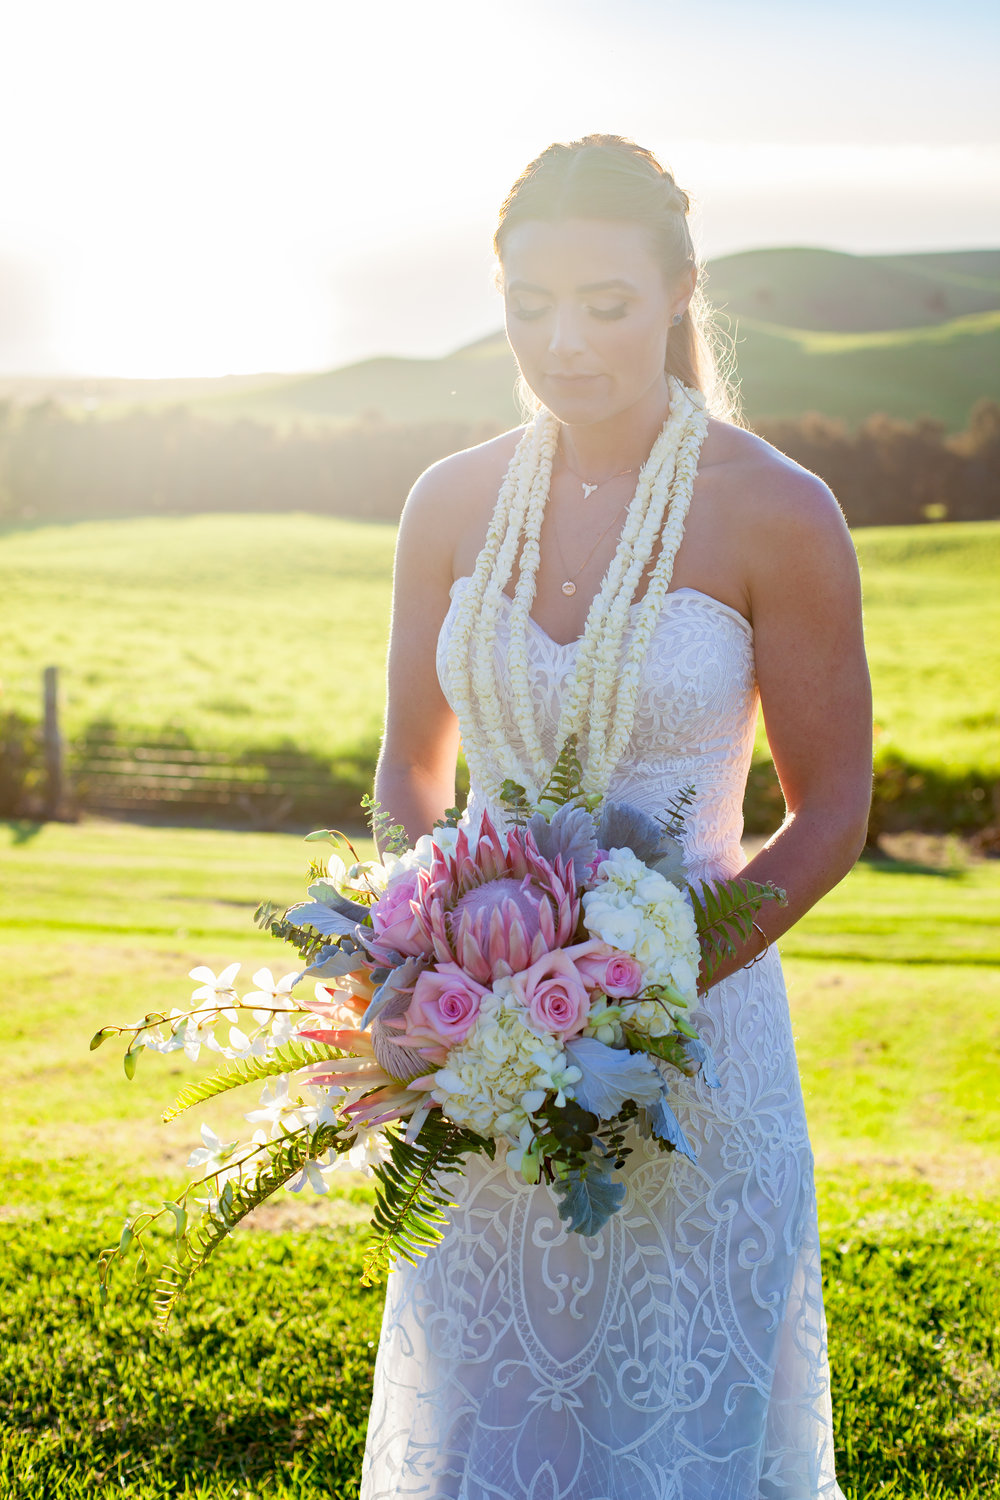 big island hawaii kahua ranch wedding © kelilina photography 20170106173755.jpg